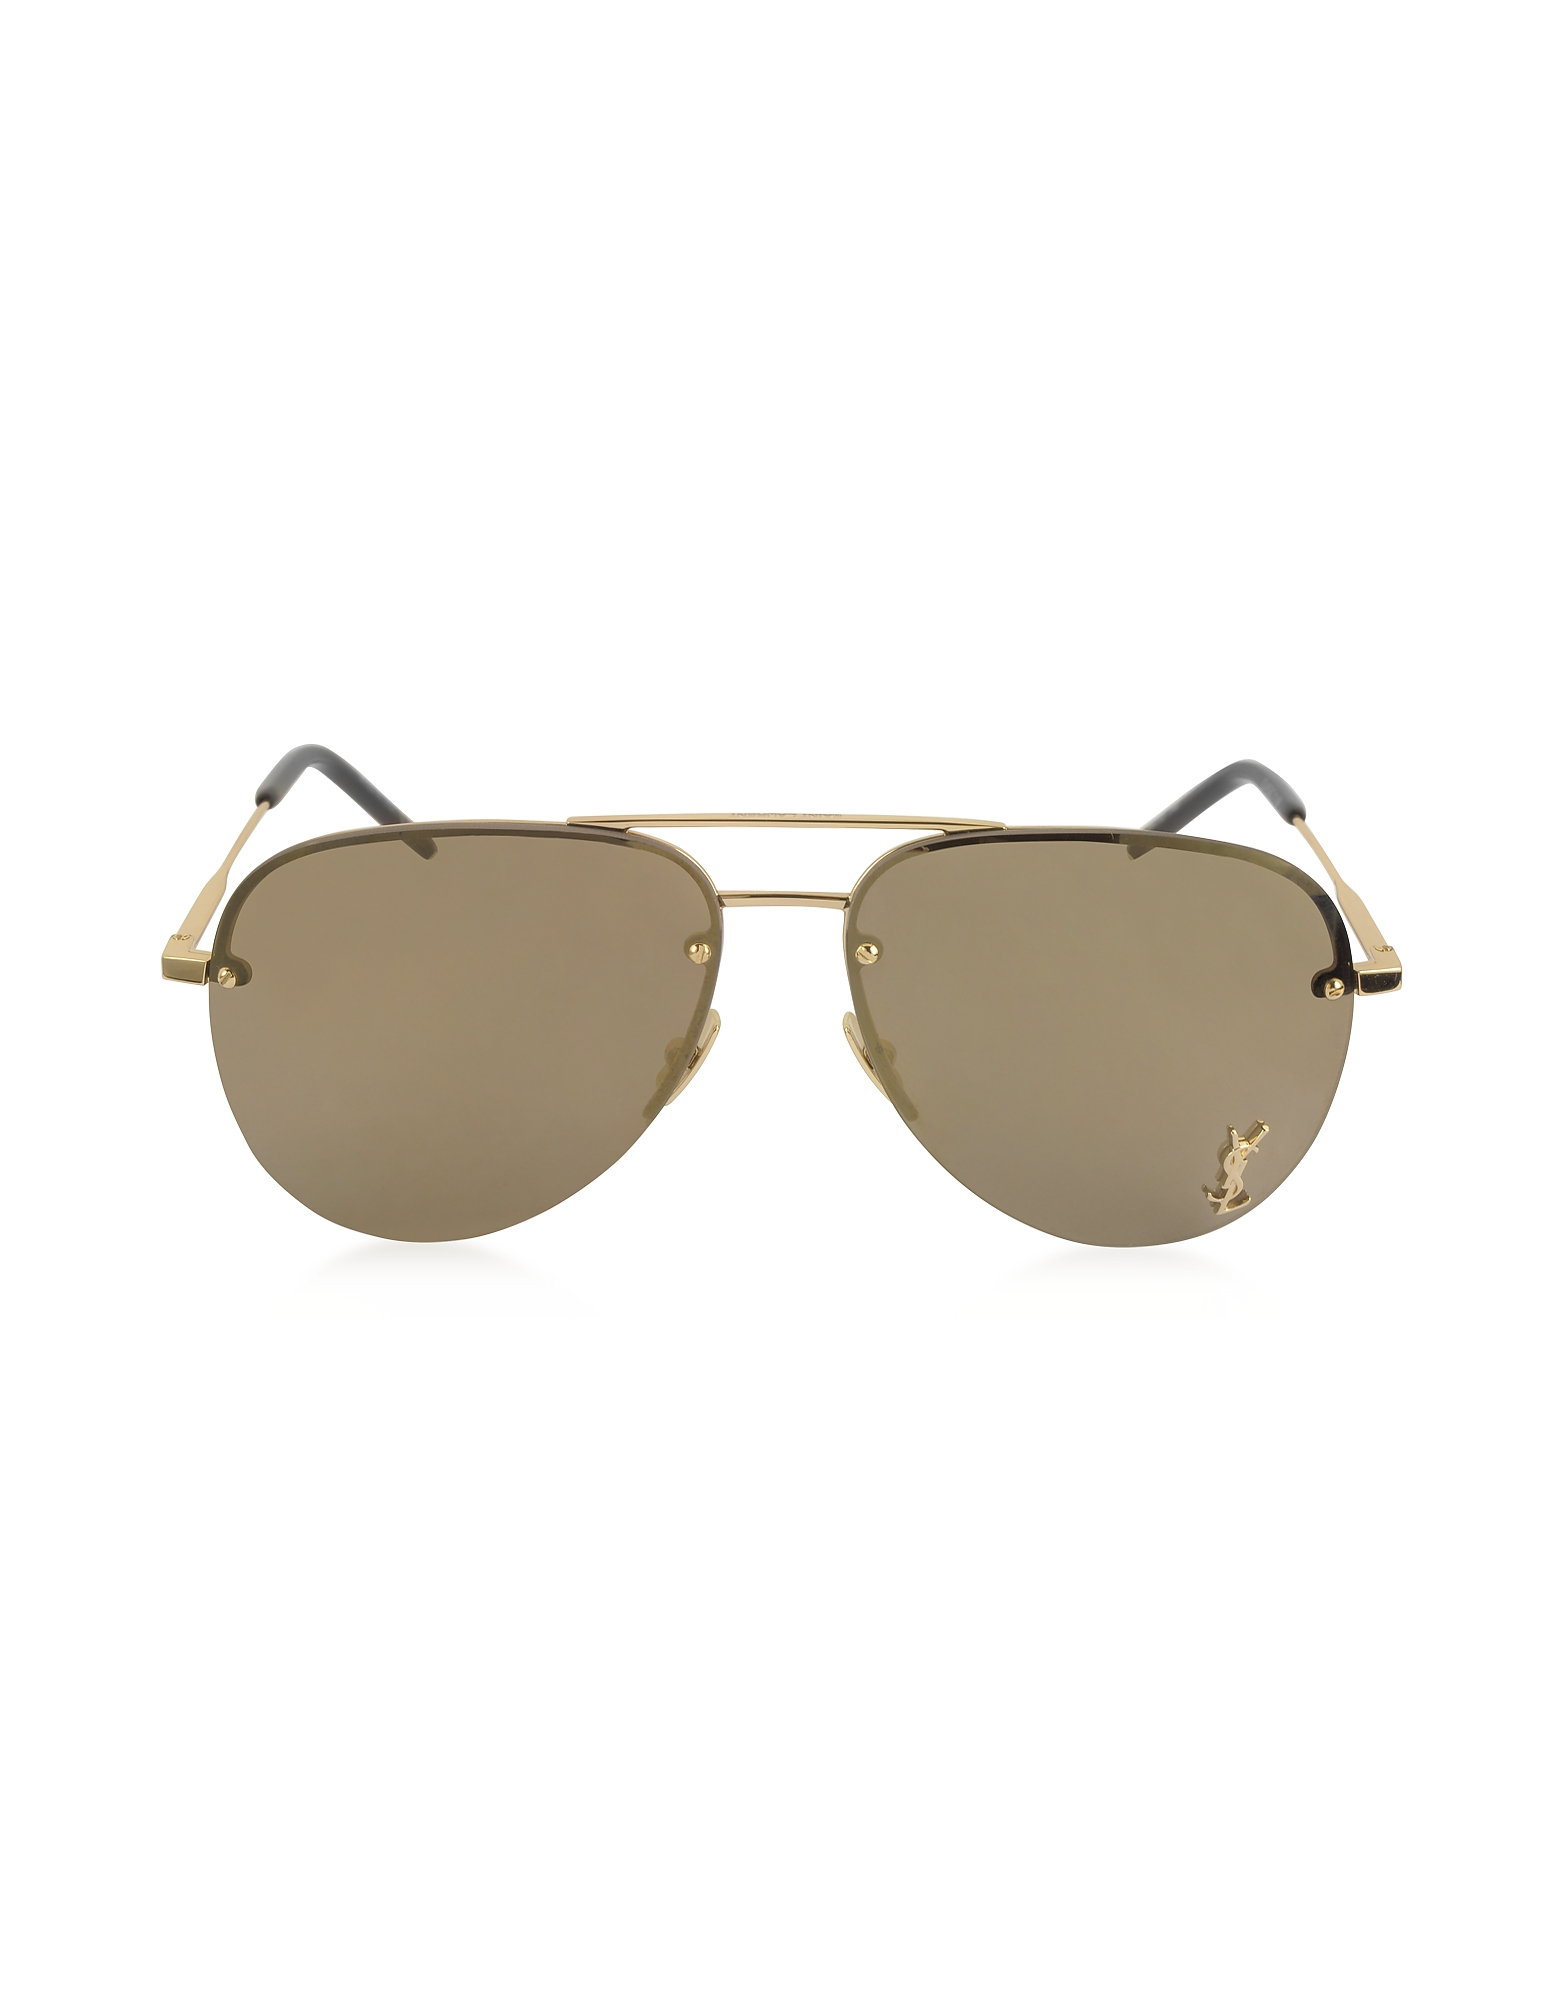 Saint Laurent Sunglasses, Classic 11M Signature Metal Aviator Unisex Sunglasses